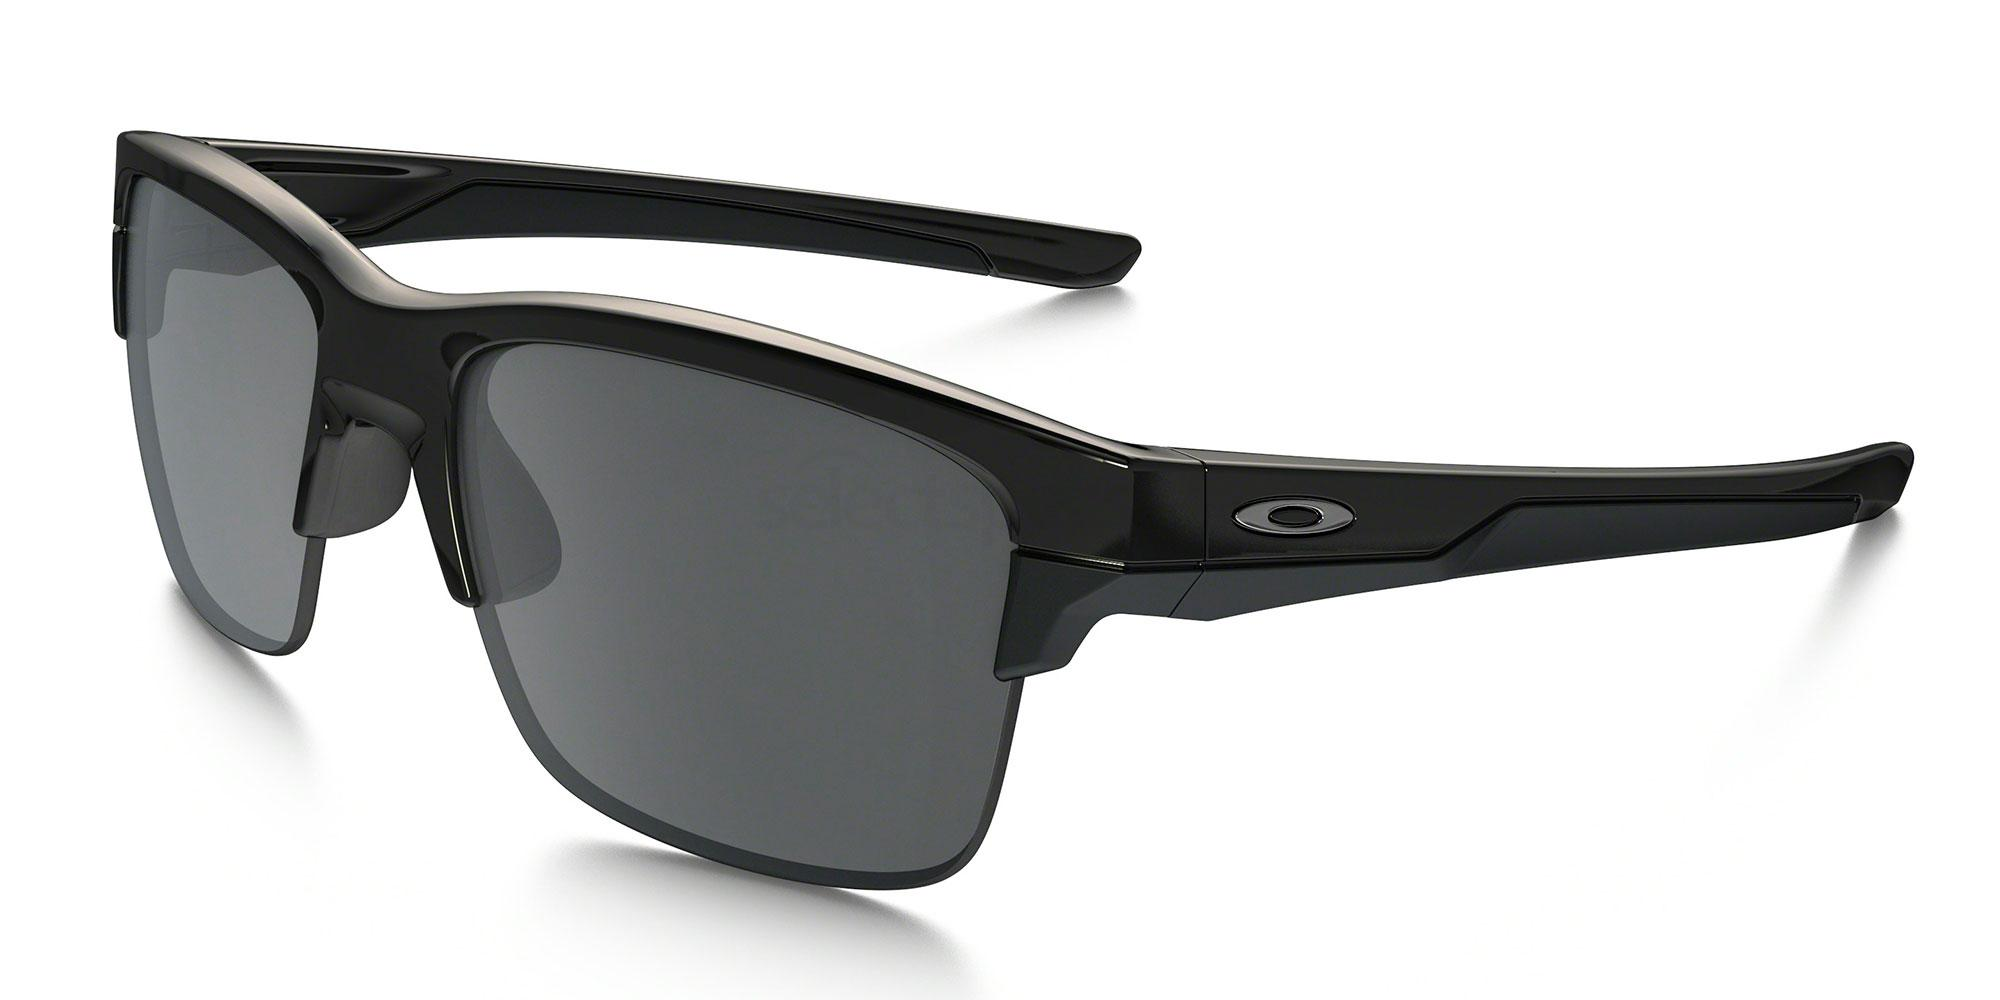 931603 OO9316 THINLINK Sunglasses, Oakley